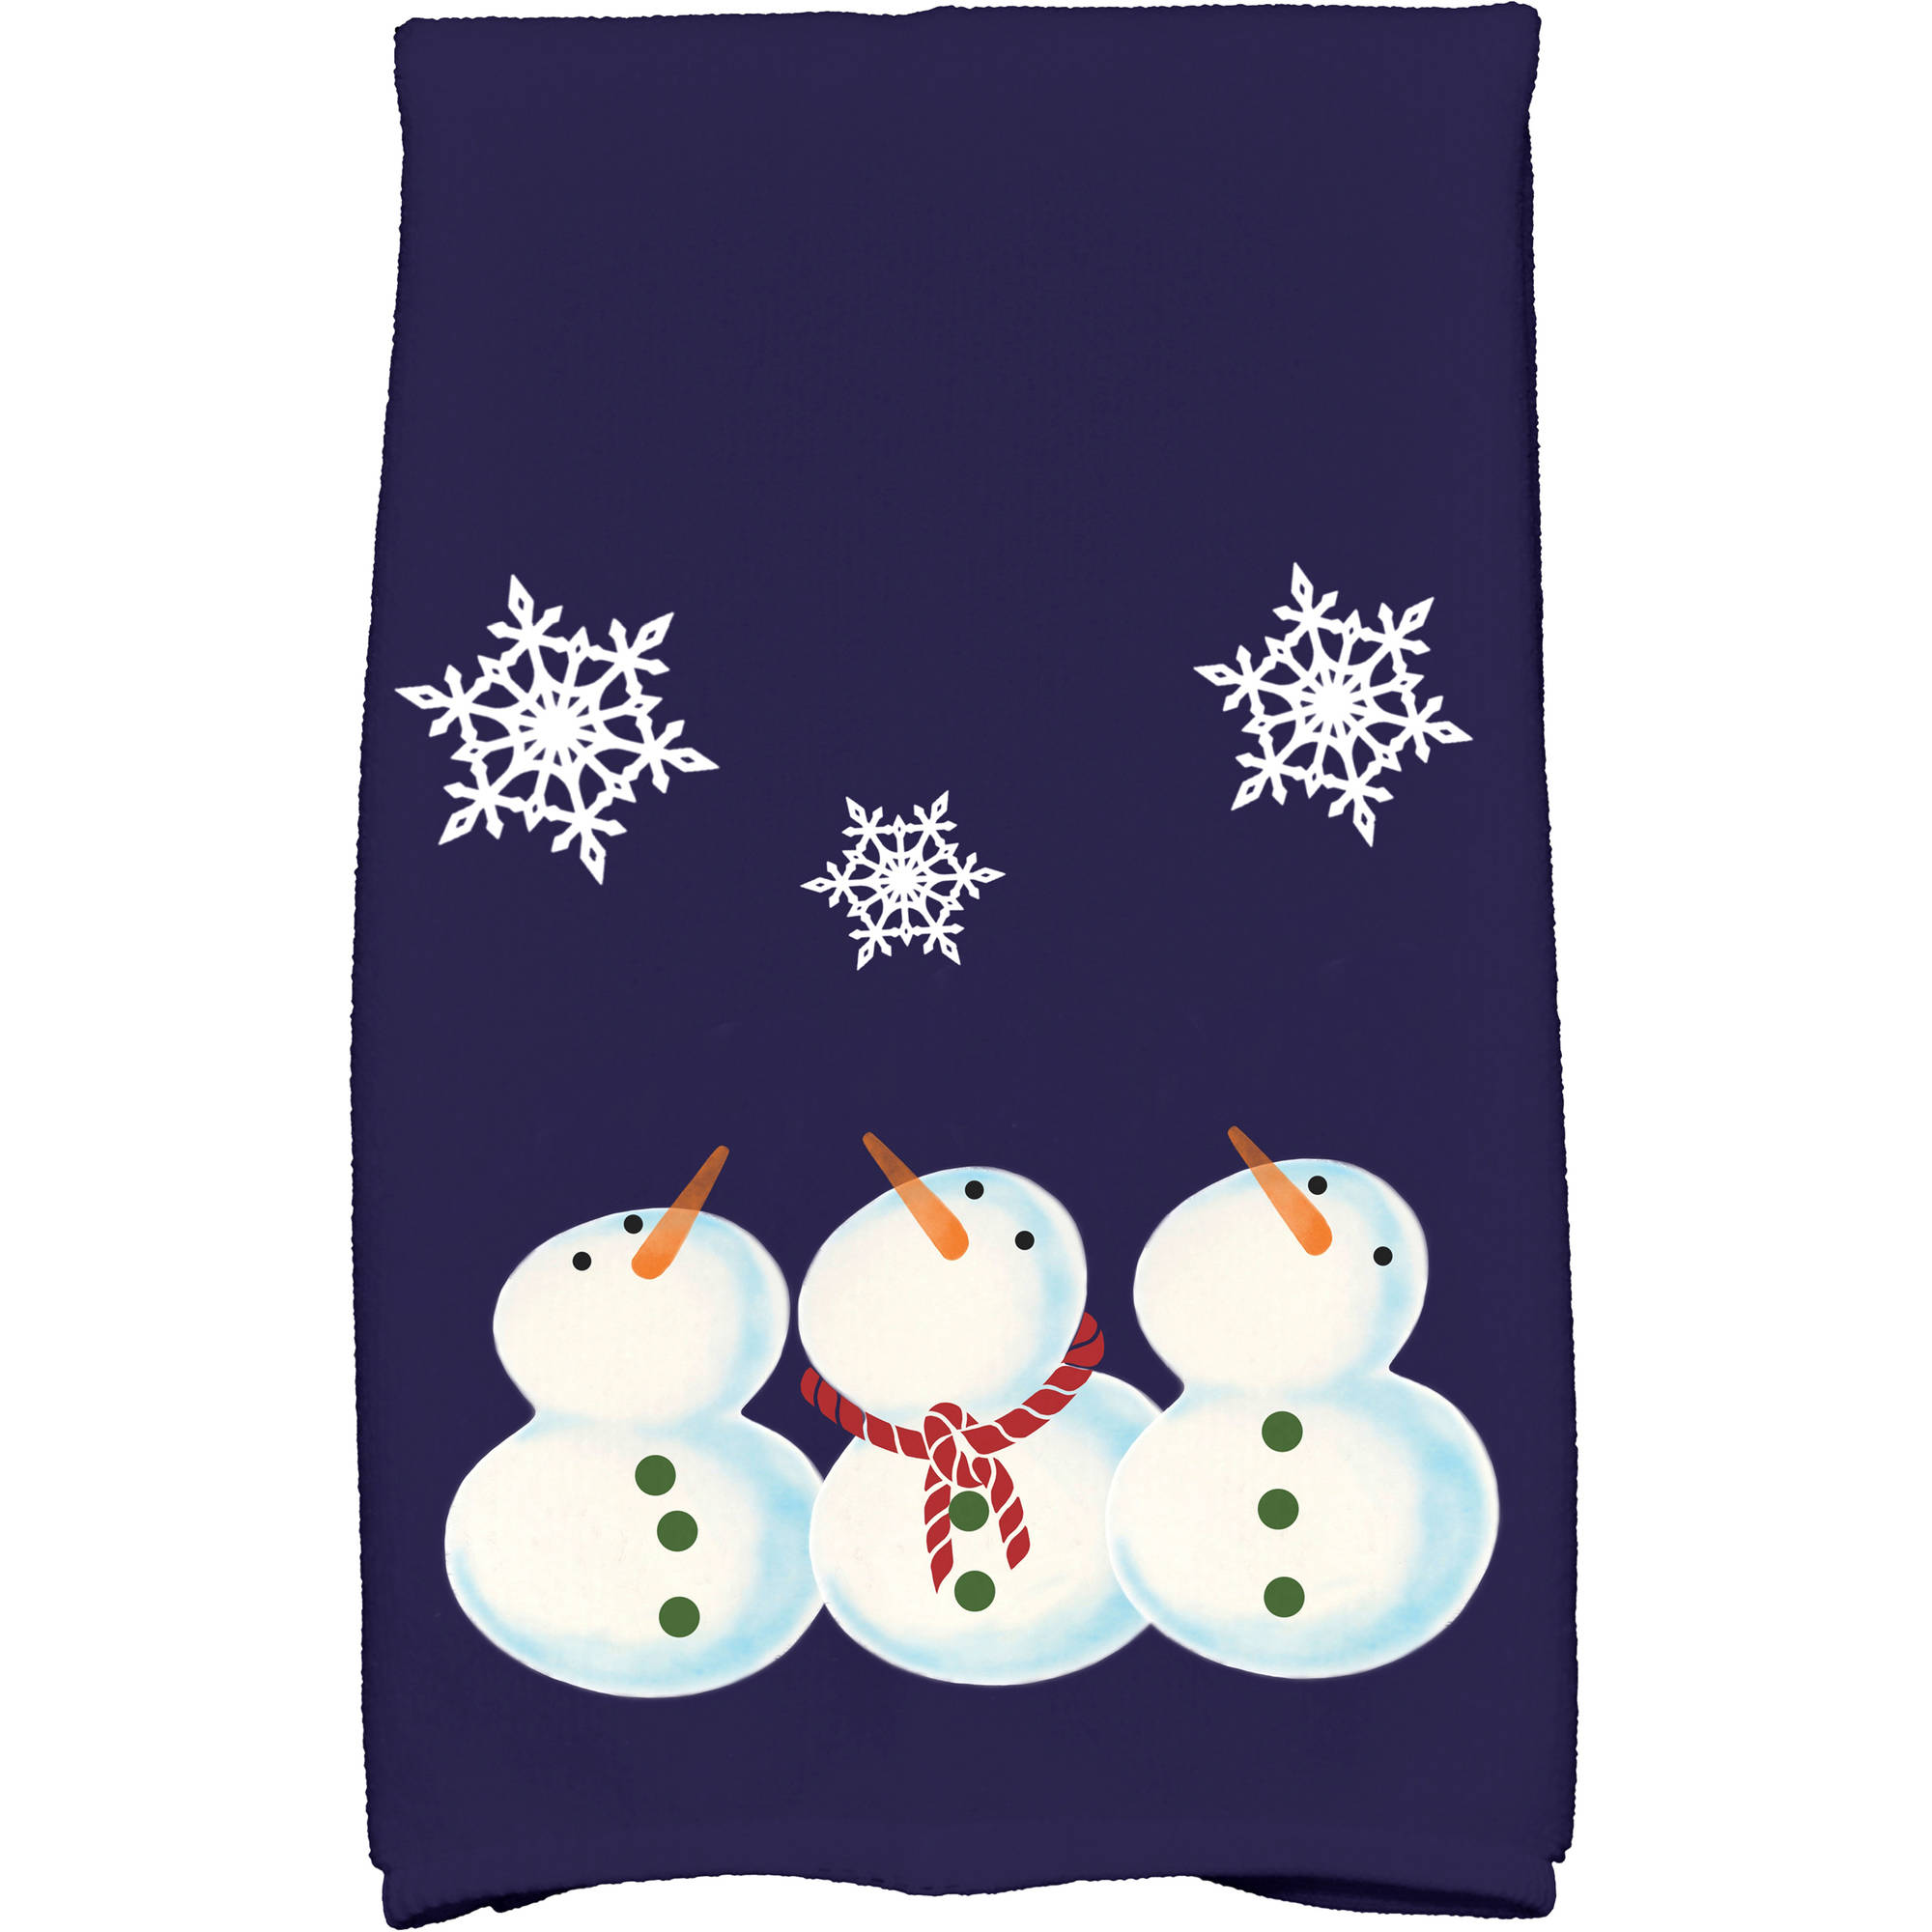 "Simply Daisy 16"" x 25"" 3 Wise Snowmen Holiday Geometric Print Kitchen Towel by E By Design"